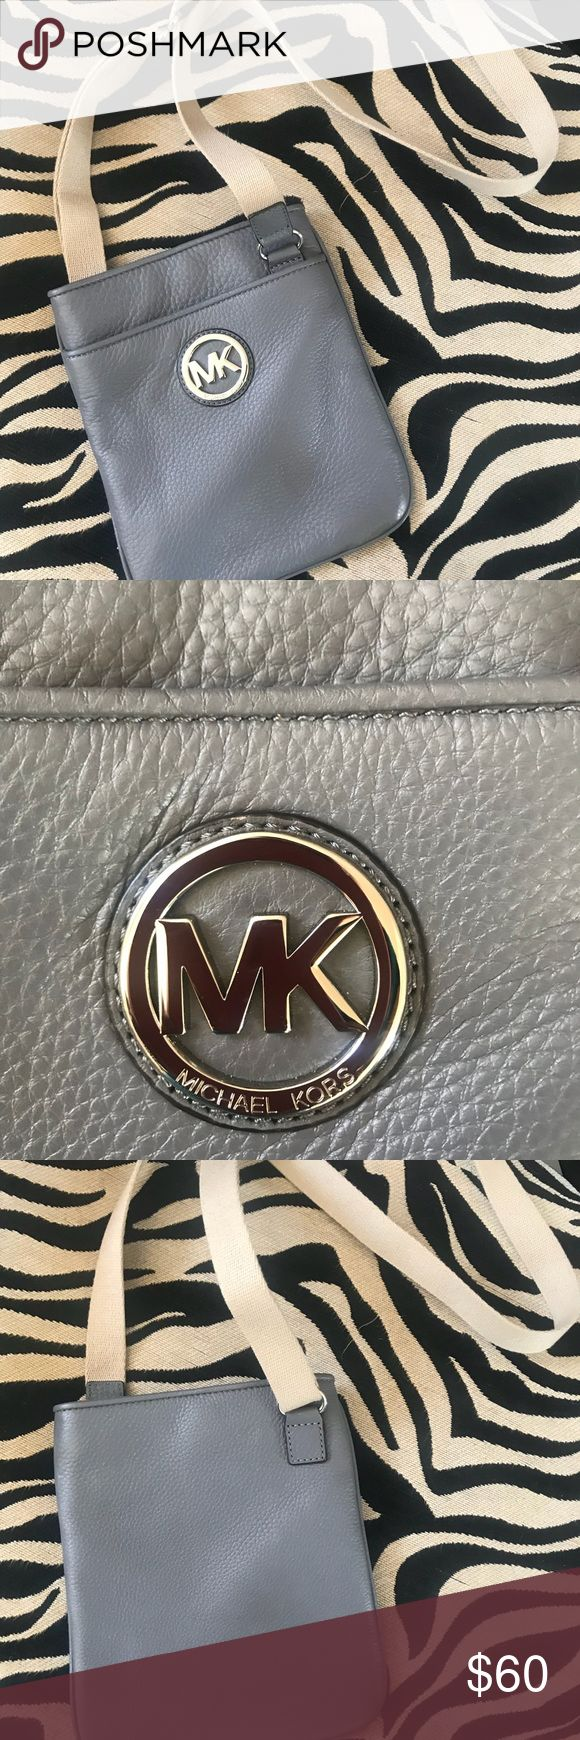 Micheal Kors Crossbody Perfect cross body for travel or on the go. Used once. Looks brand new. Snap closure with pockets. Pebble leather. Michael Kors Bags Crossbody Bags